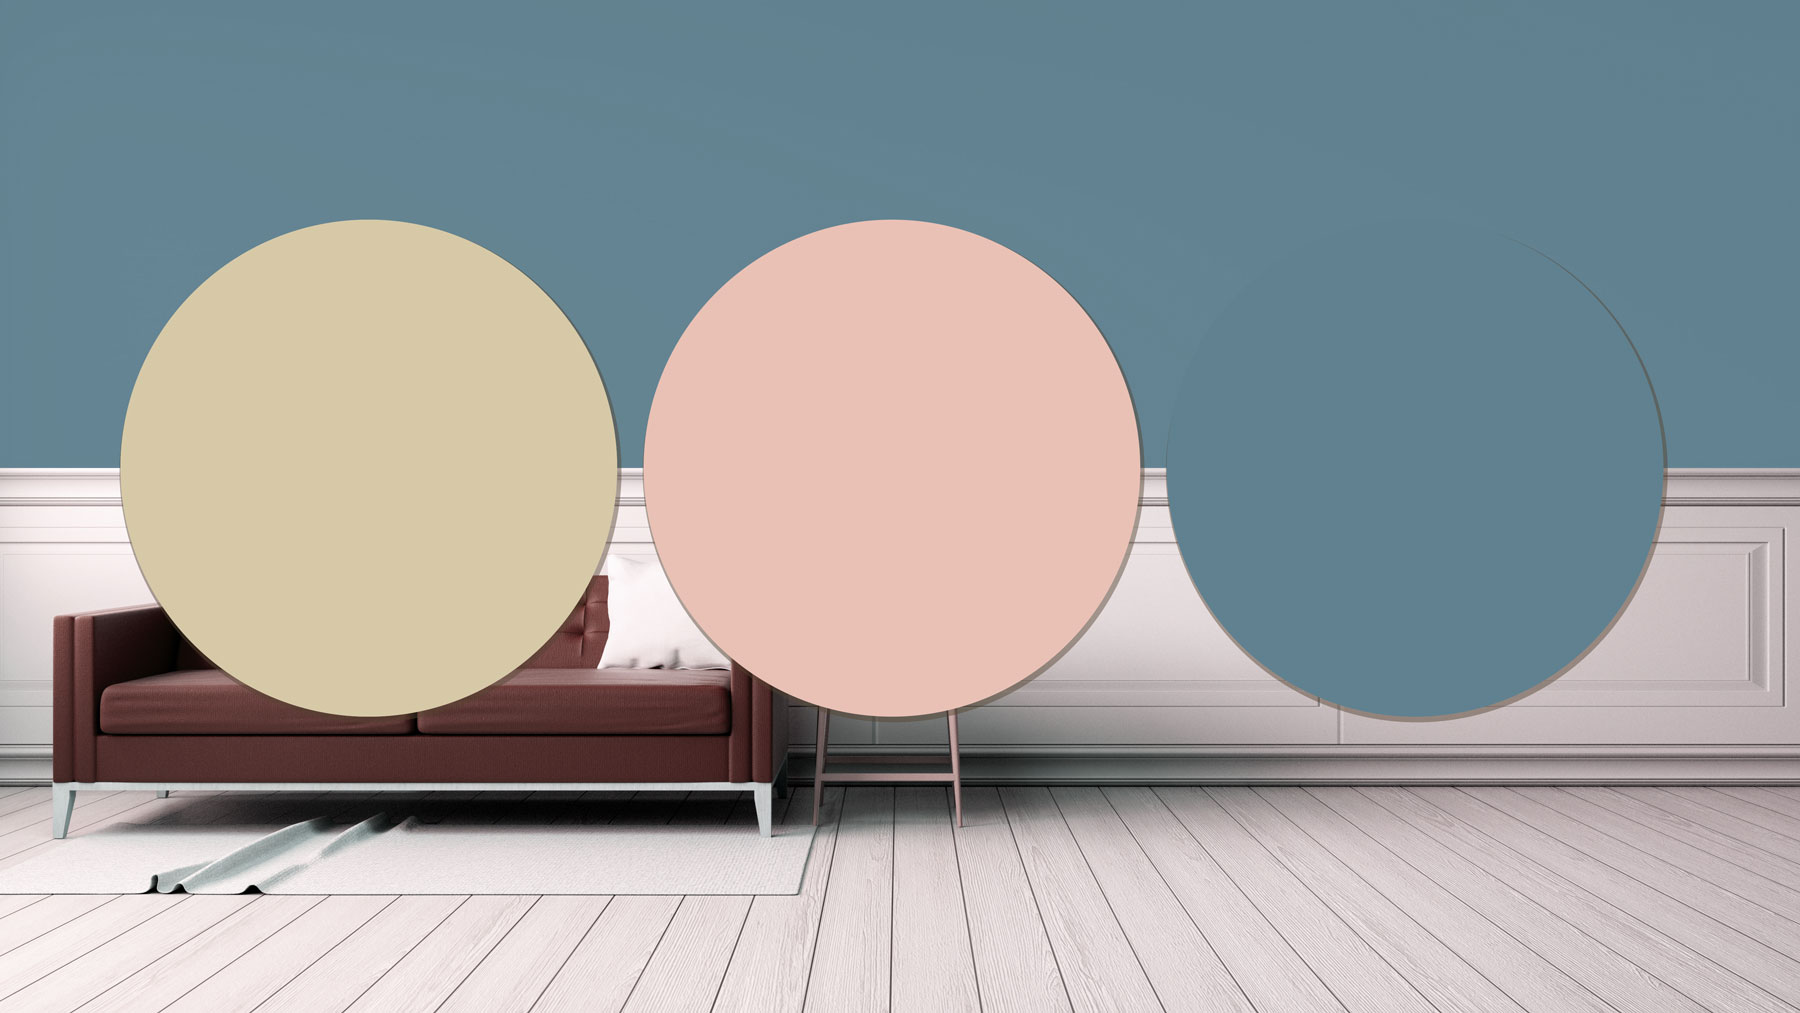 These Are the Hottest Paint Colors Right Now, According to Google